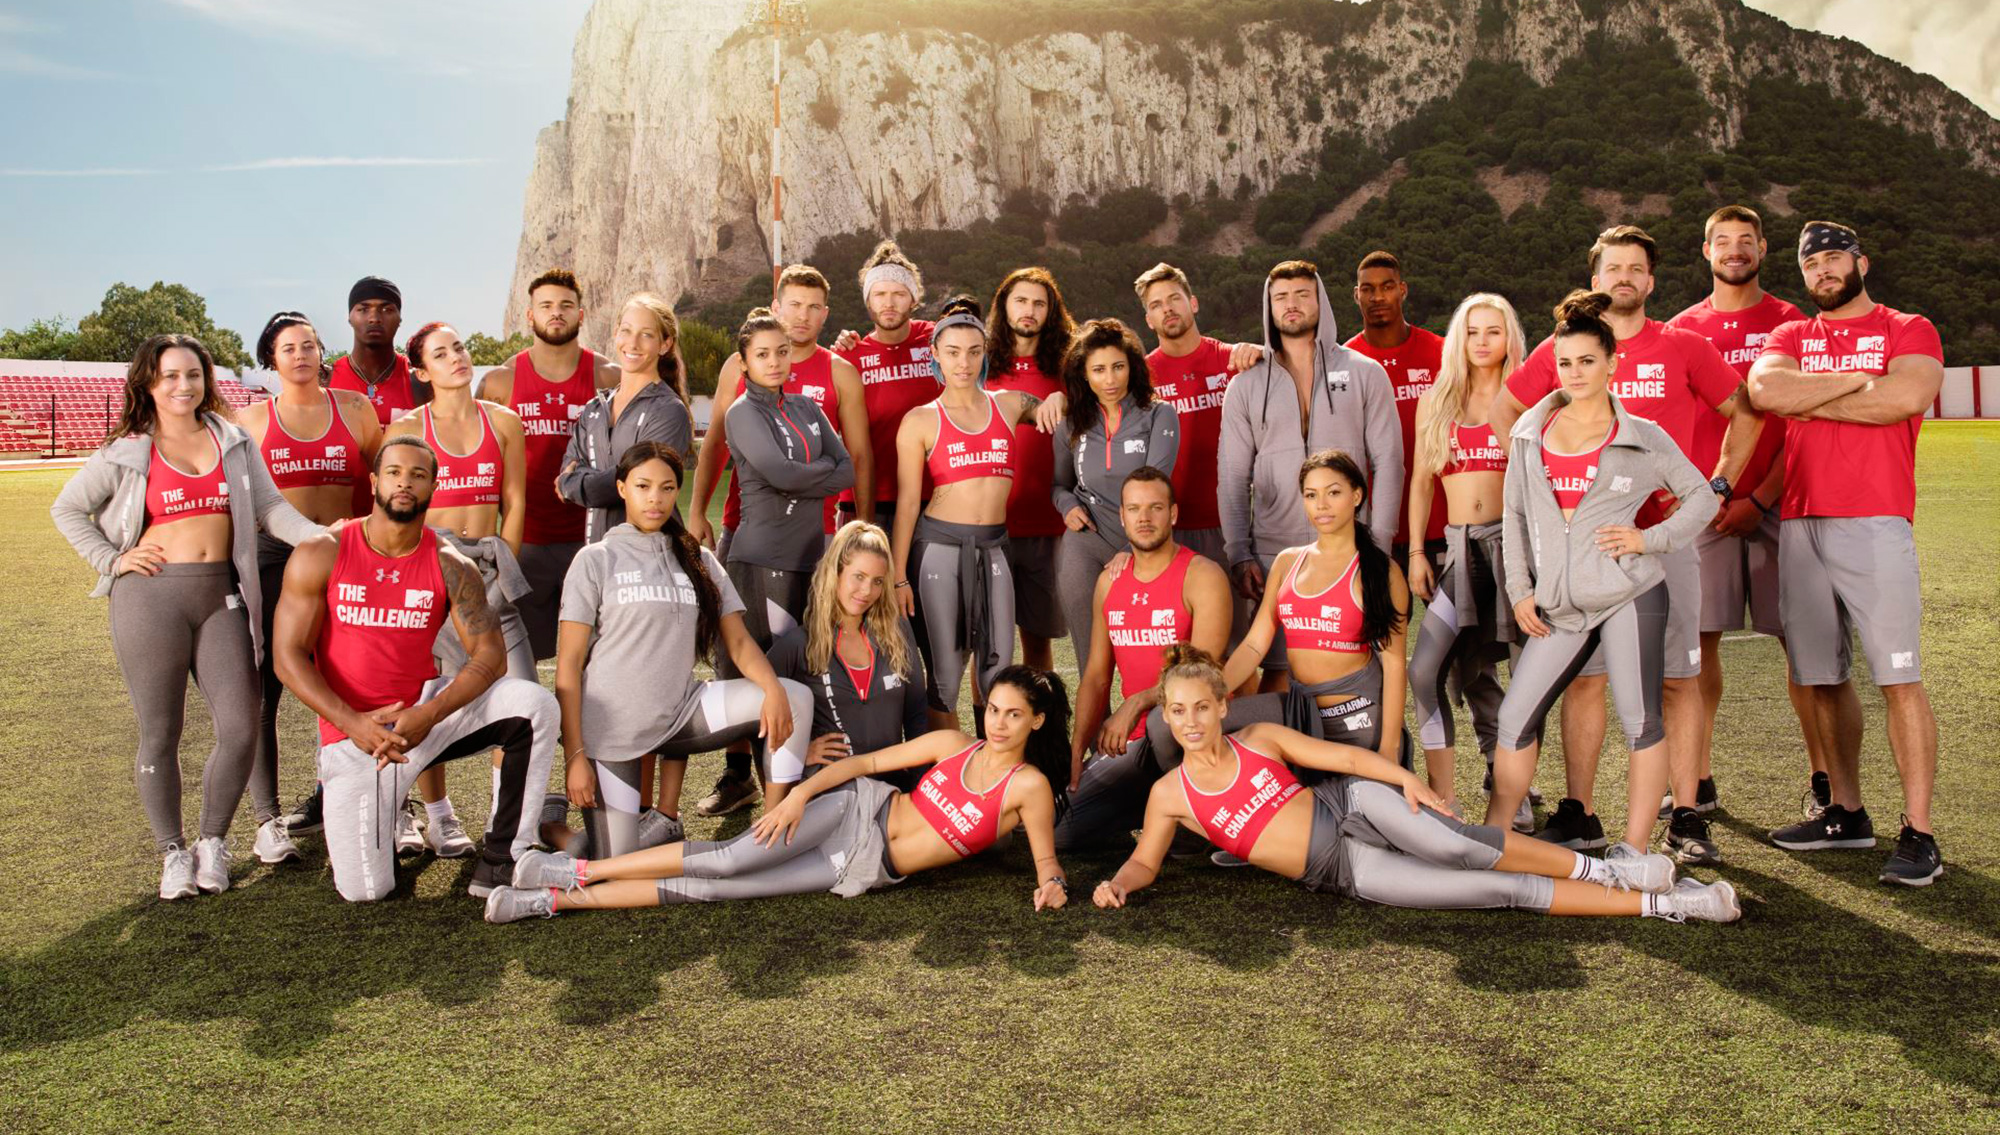 MTV's 'The Challenge': All Your Burning Questions Answered